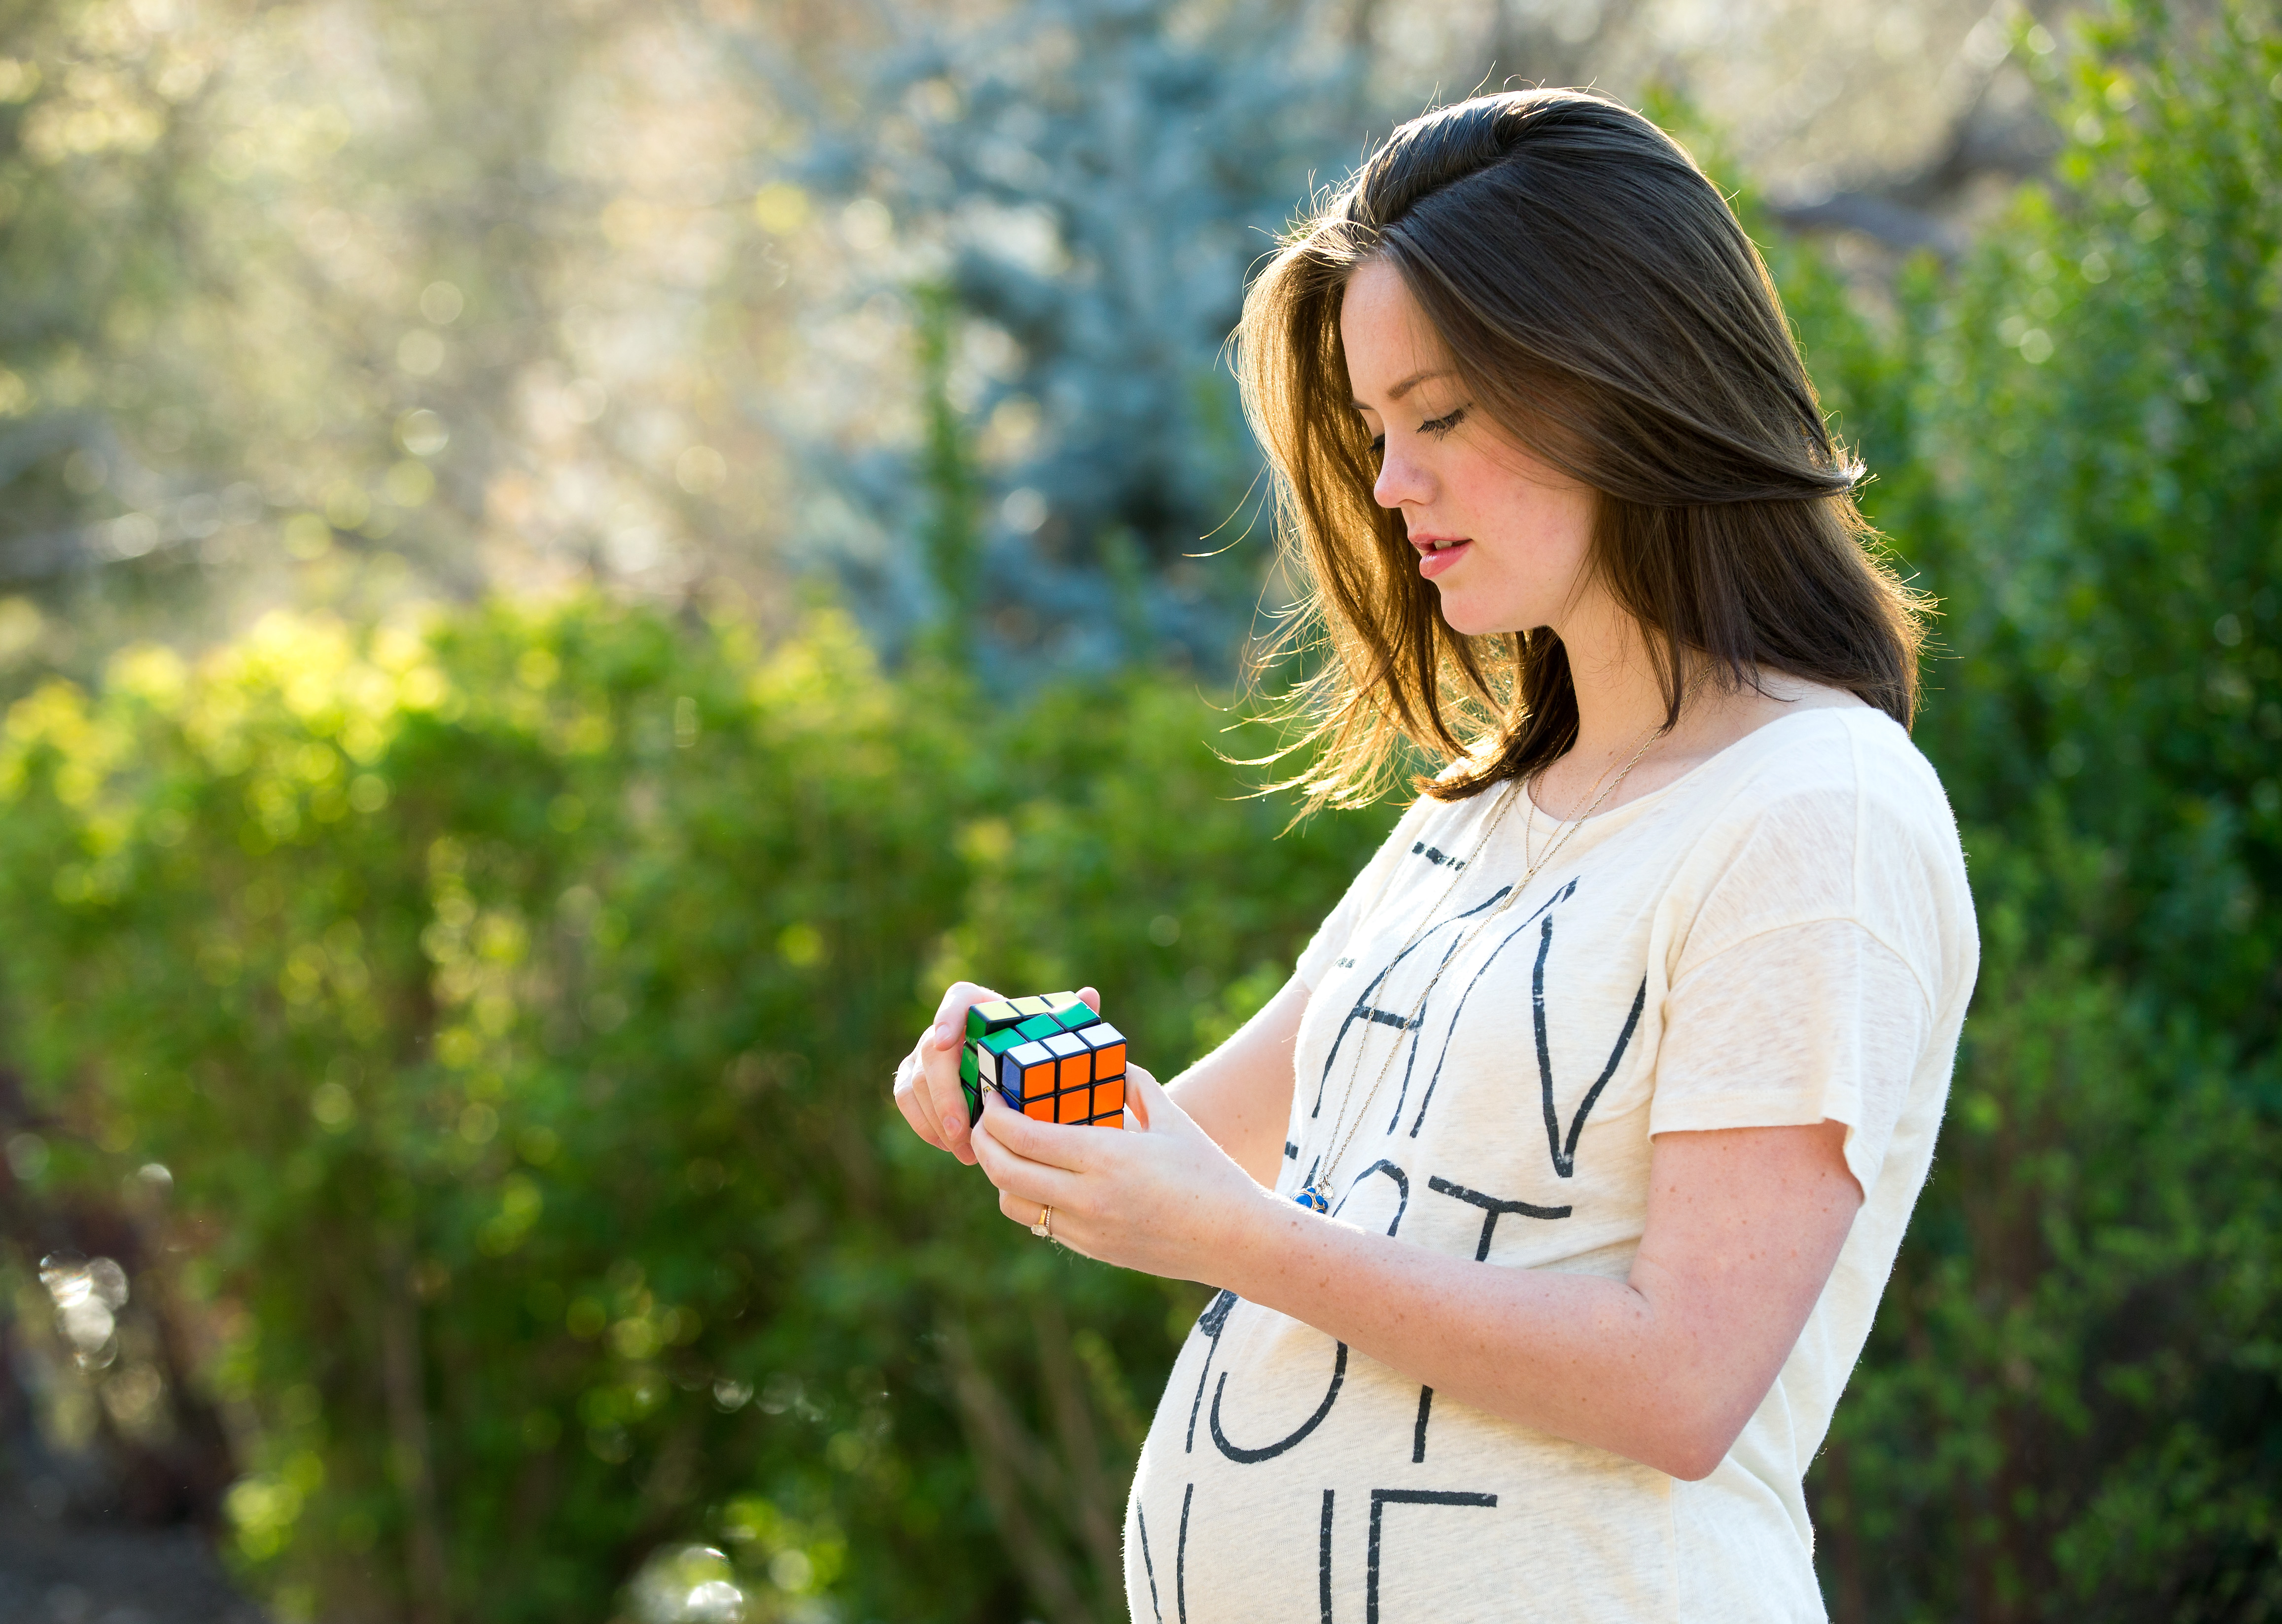 Absent-mindedness and forgetfulness: what happens to the brain of a woman during pregnancy